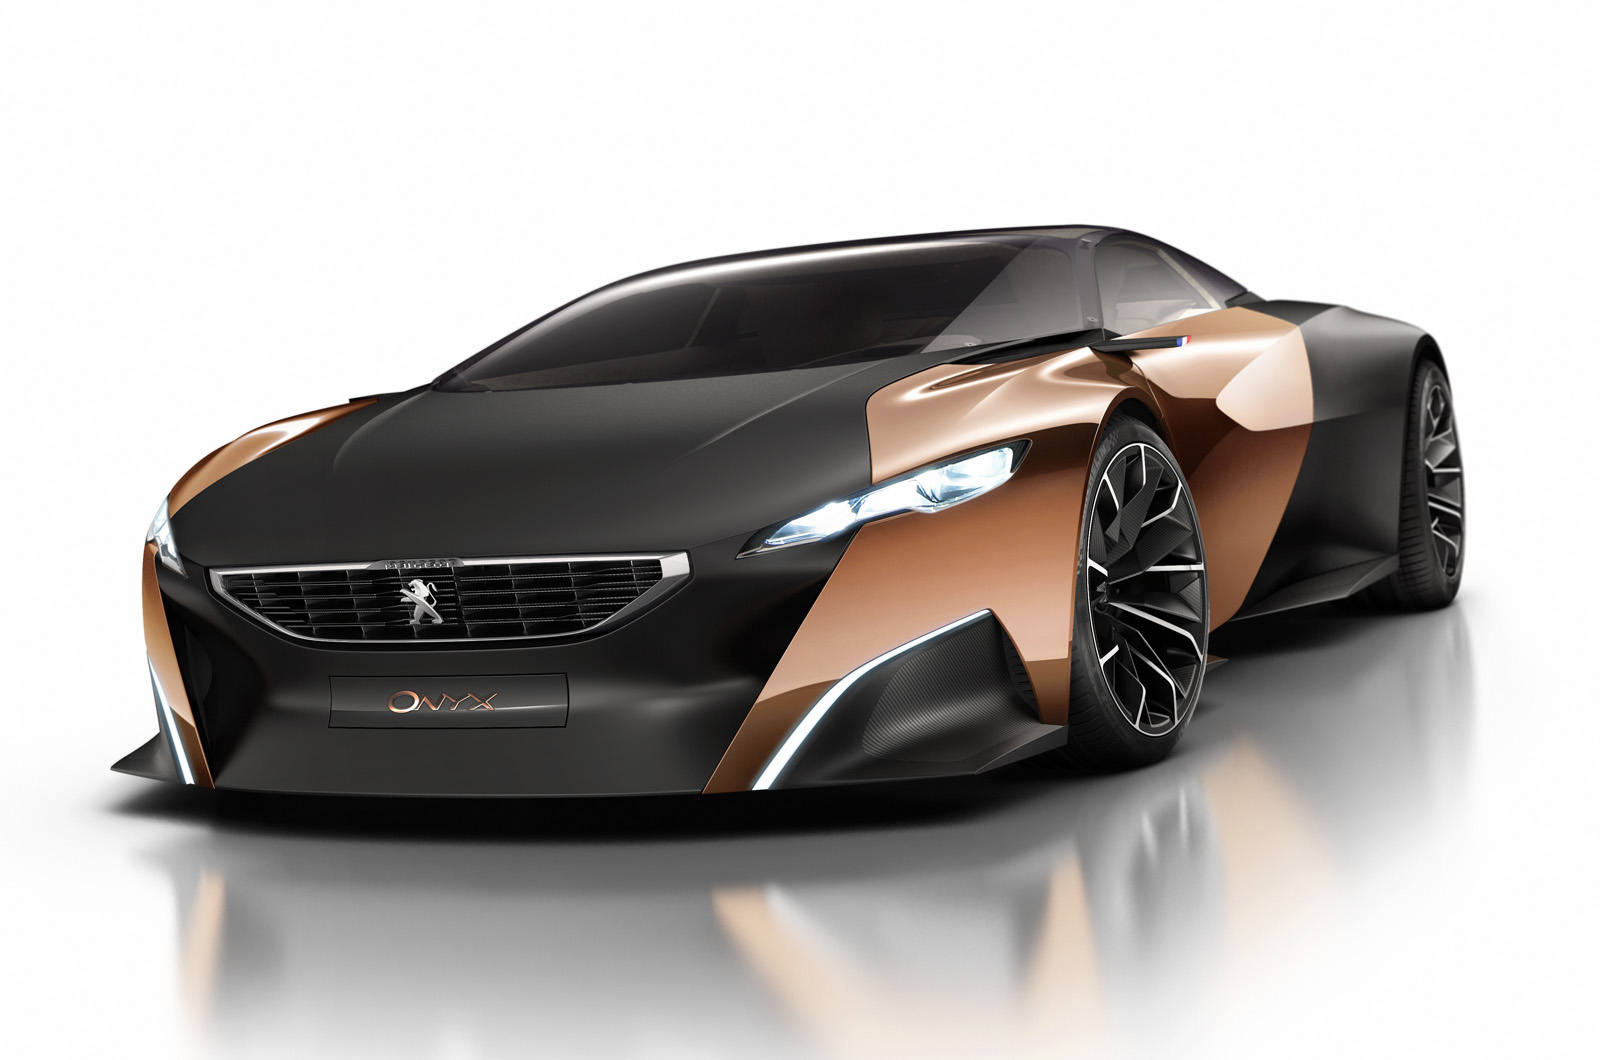 Peugeot Onyx Concept Photo Gallery Wallpapers HD